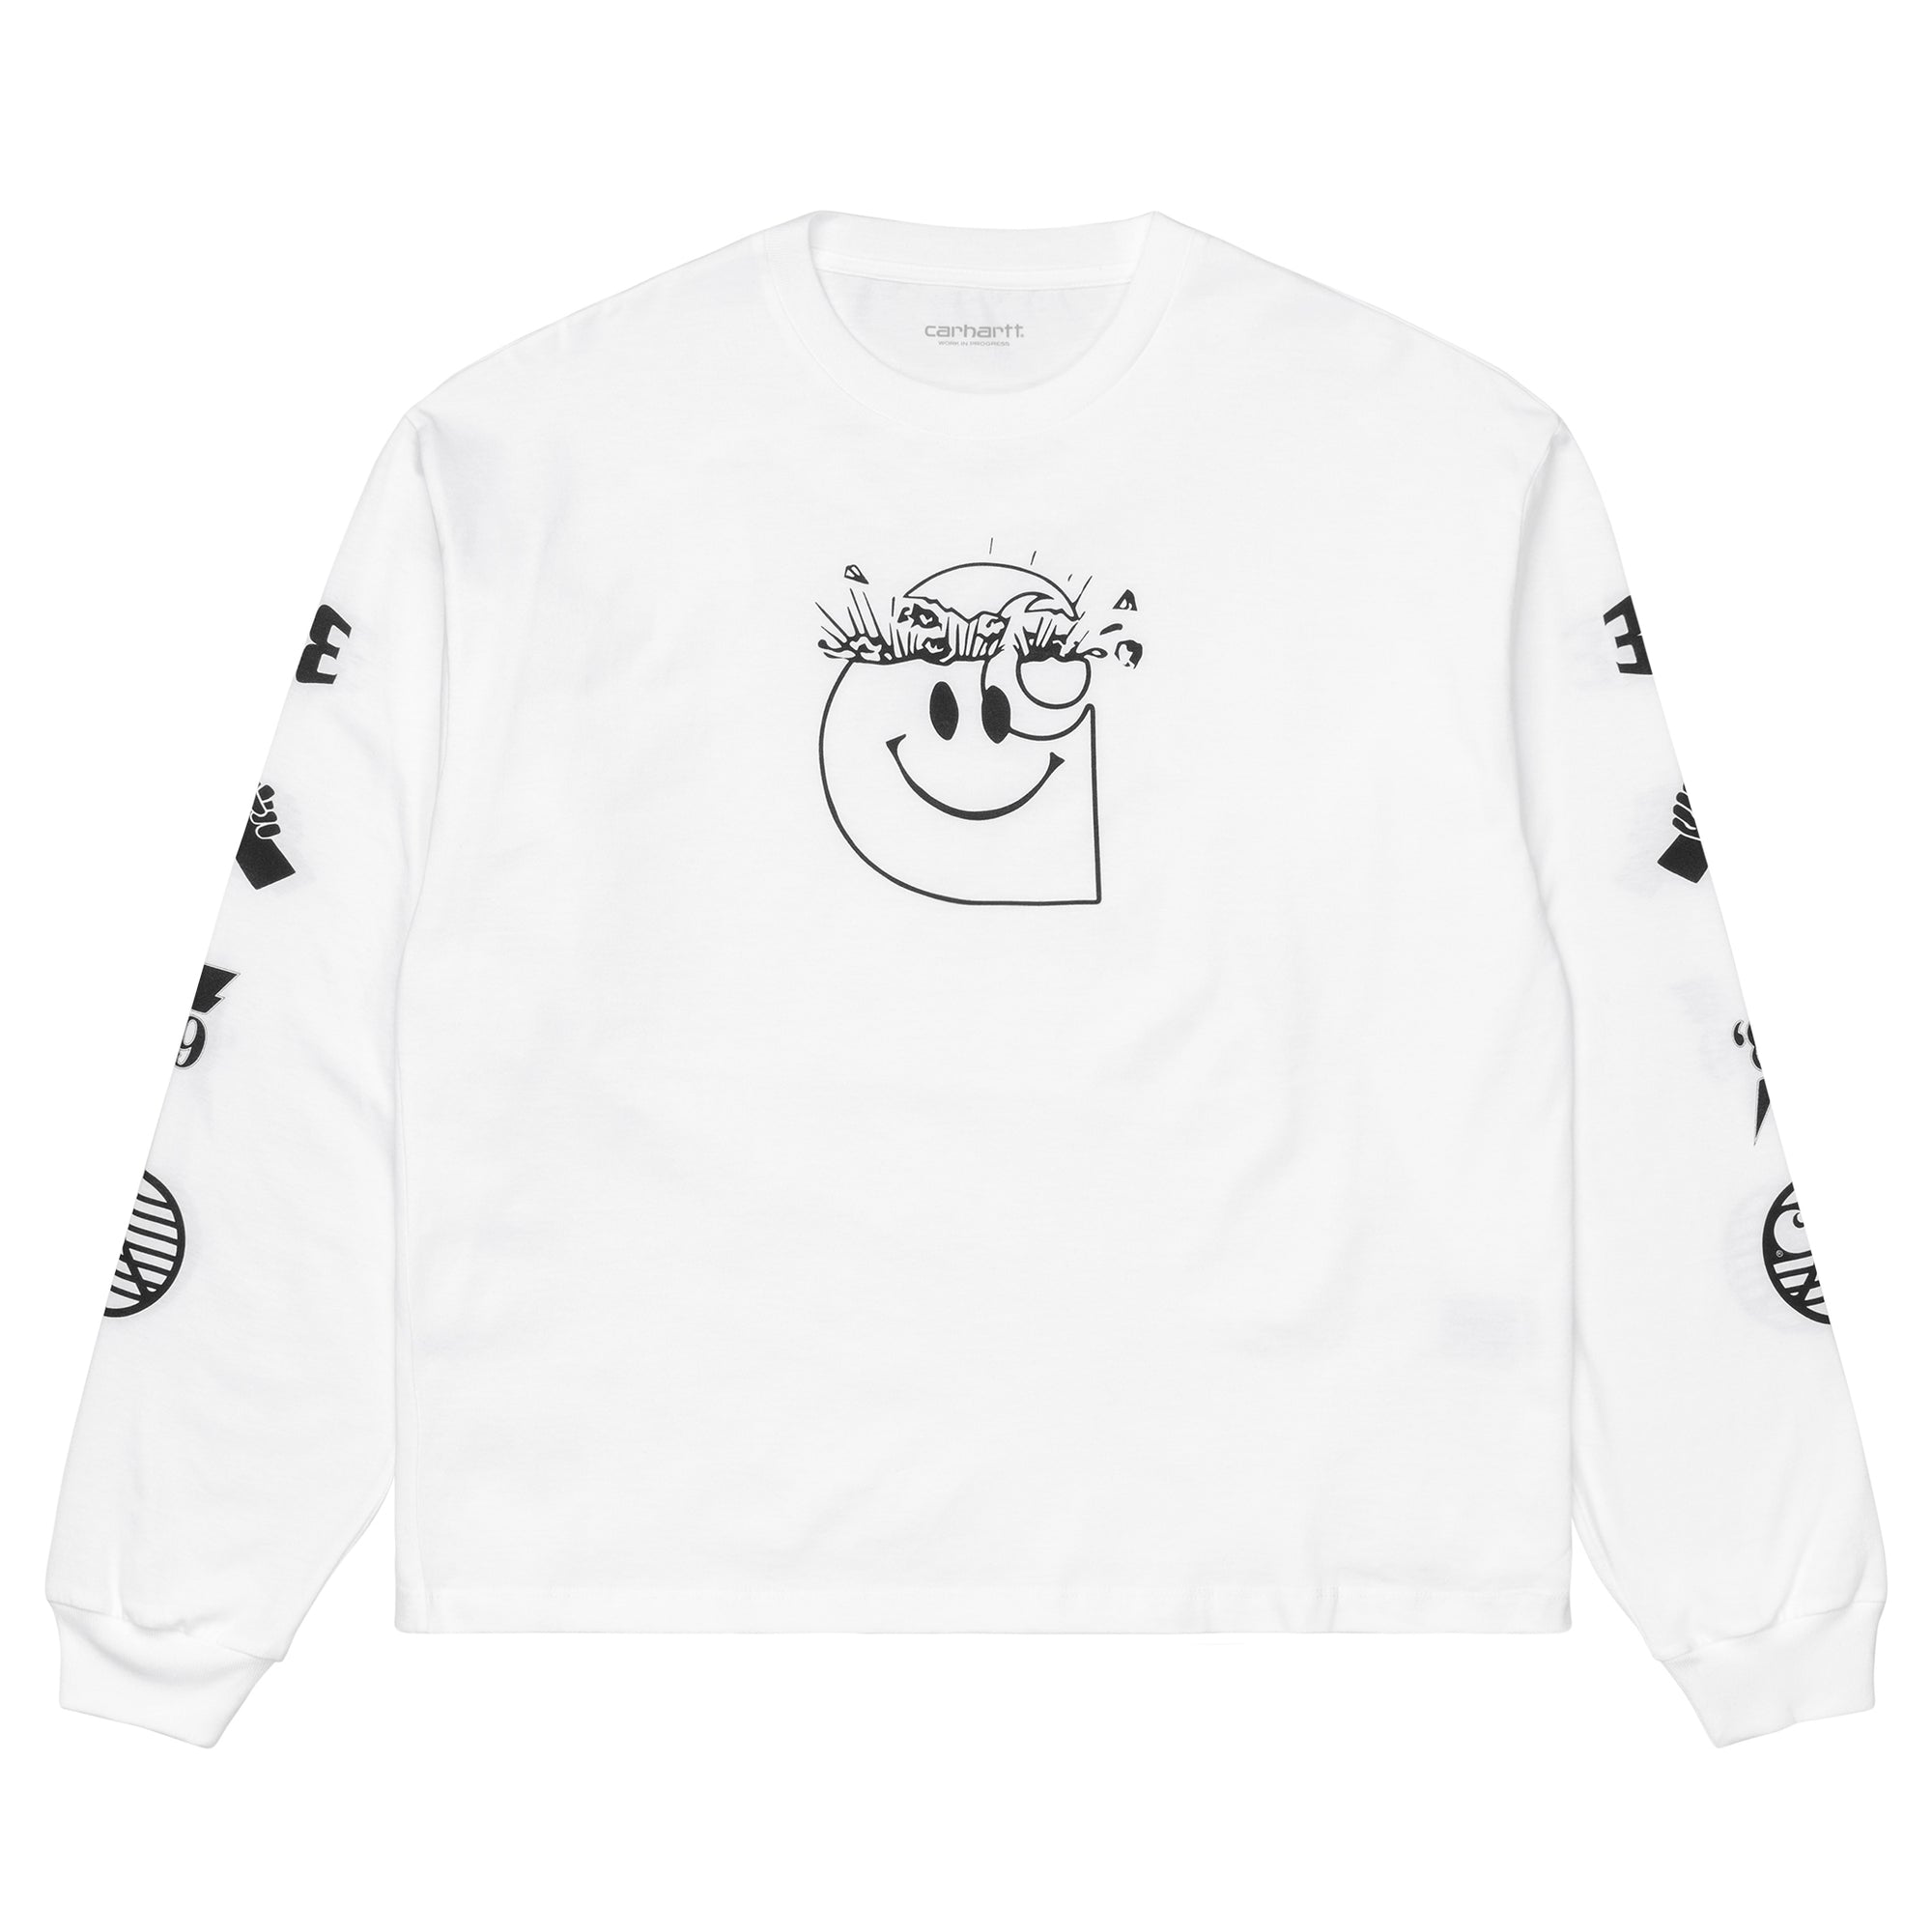 Carhartt WIP Womens L/S Tab T-Shirt: White / Black - The Union Project